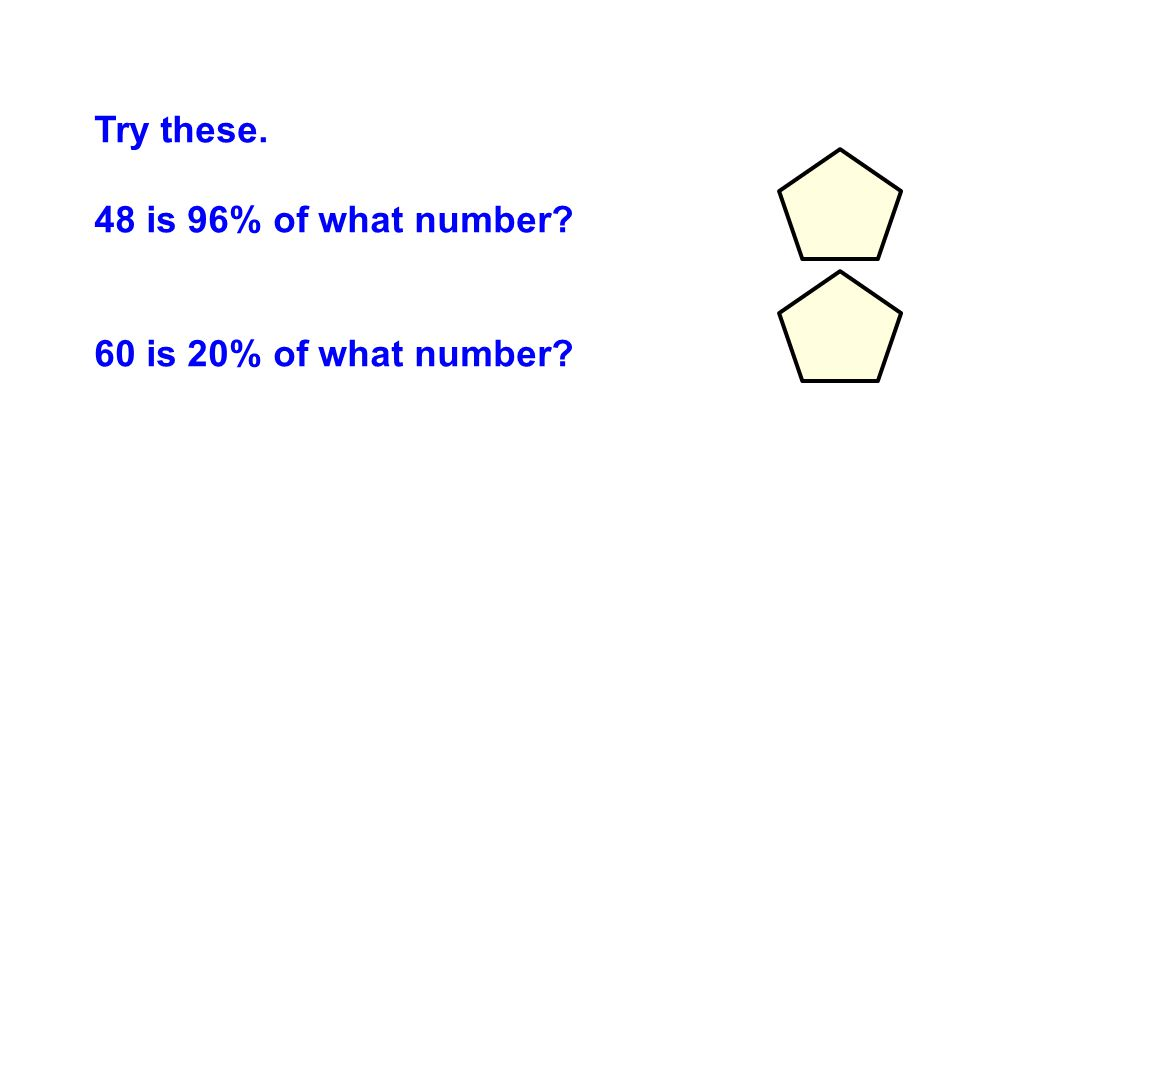 Try these. 48 is 96% of what number?50 60 is 20% of what number?300